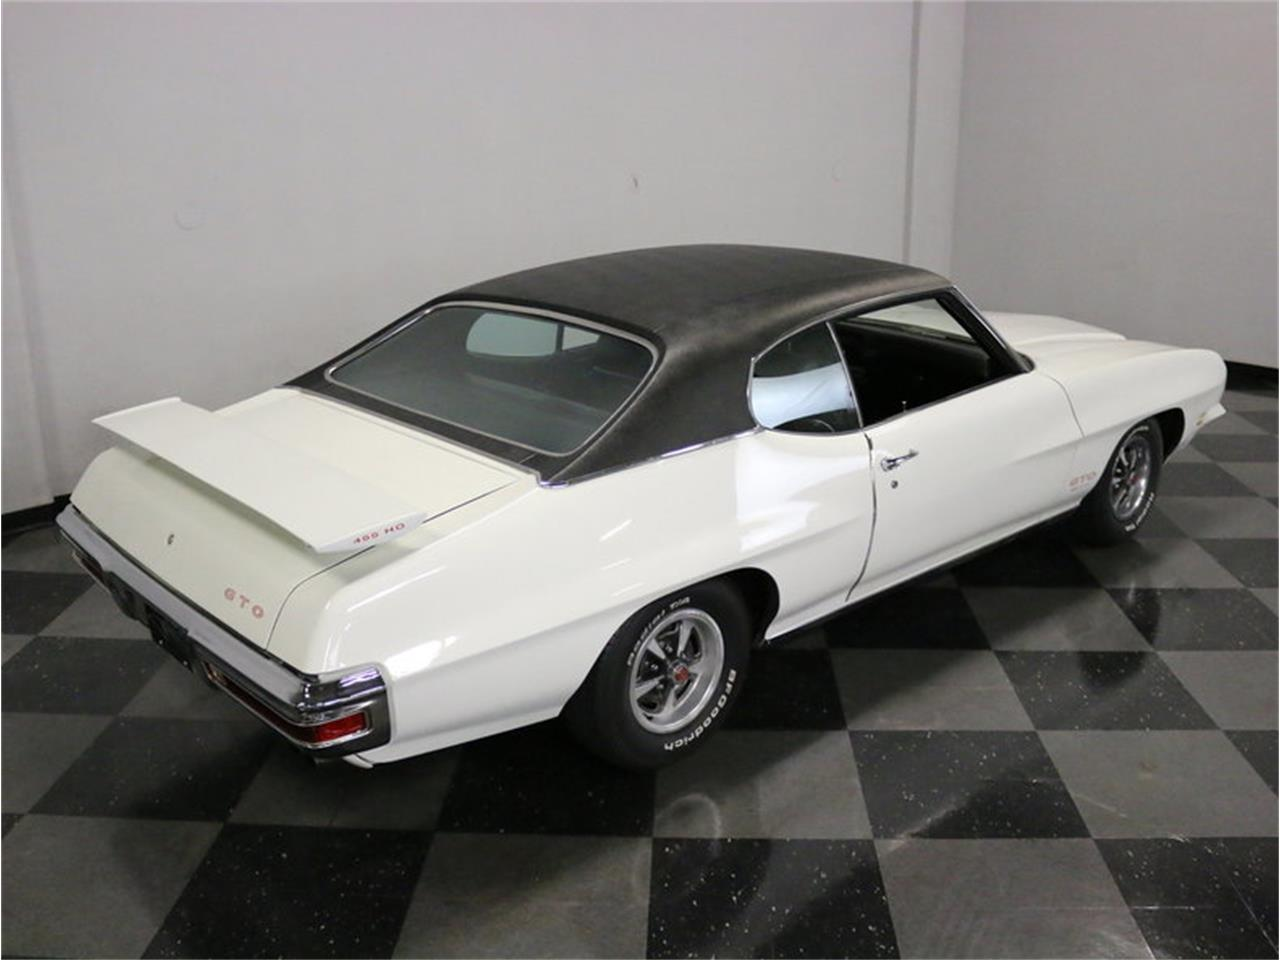 Large Picture of Classic 1971 GTO - $39,995.00 Offered by Streetside Classics - Dallas / Fort Worth - MOBK